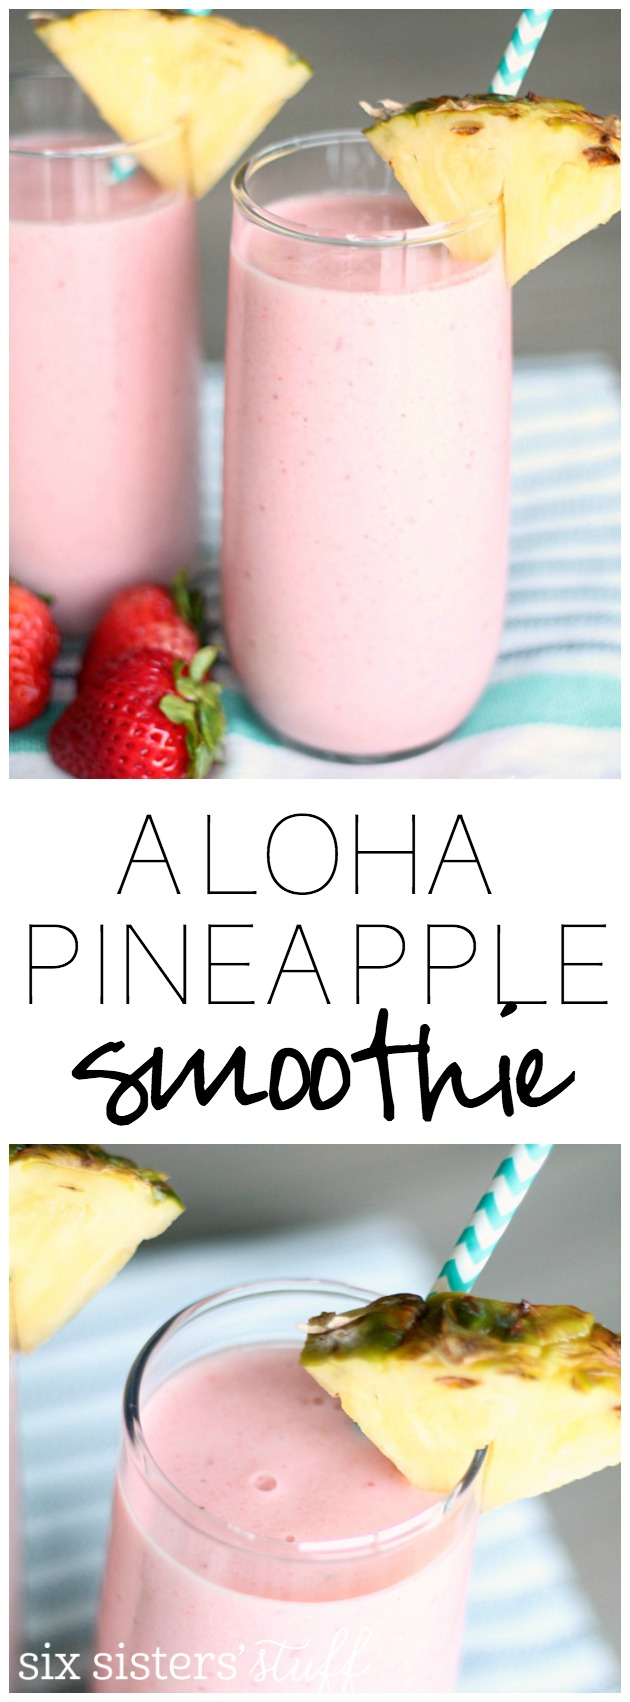 Copycat Jamba Juice Aloha Pineapple Smoothie from SixSistersStuff.com